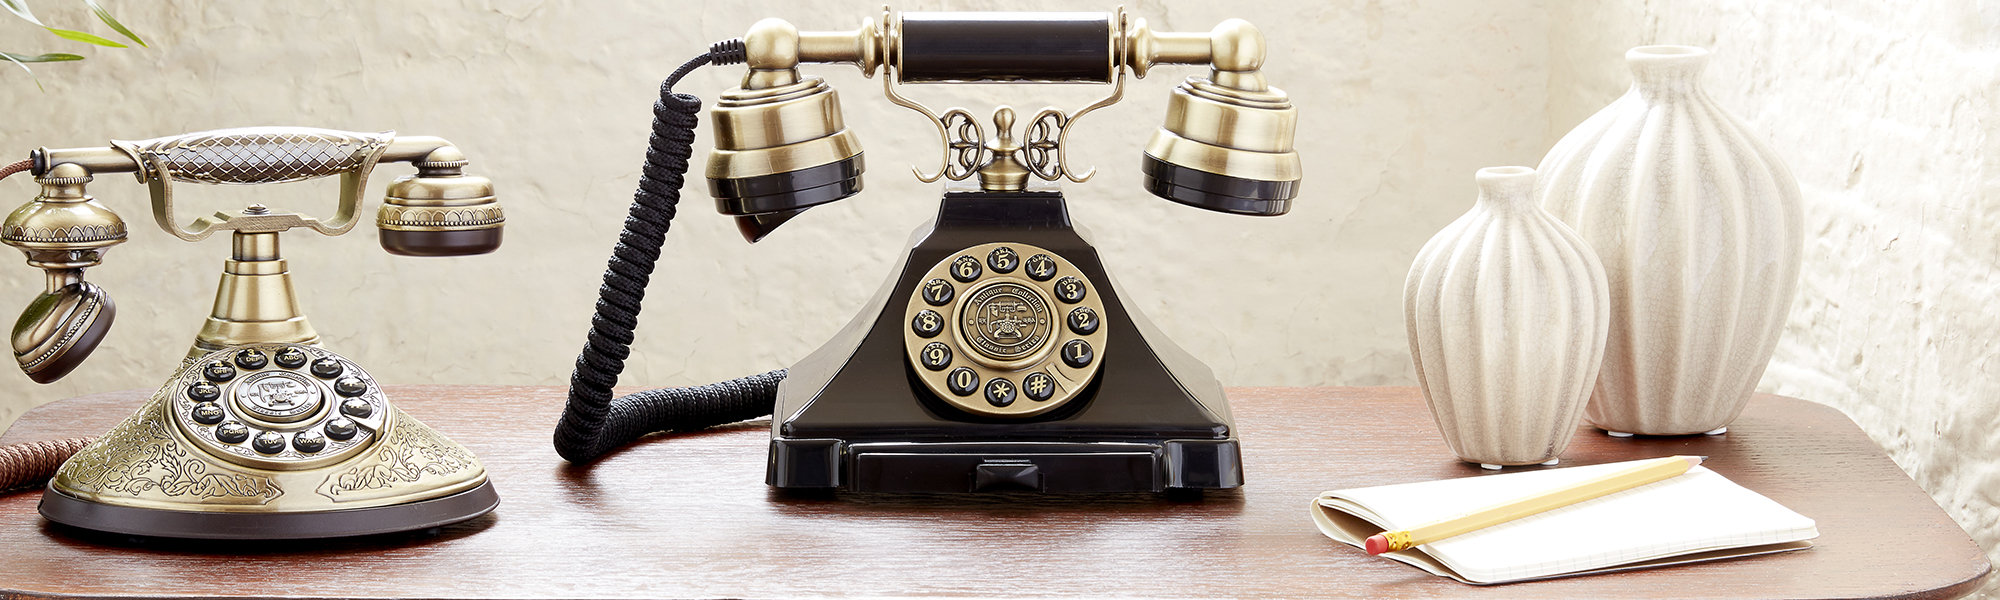 50s Telephone | 50s Phones | 1950s Phones | 1950s Telephone